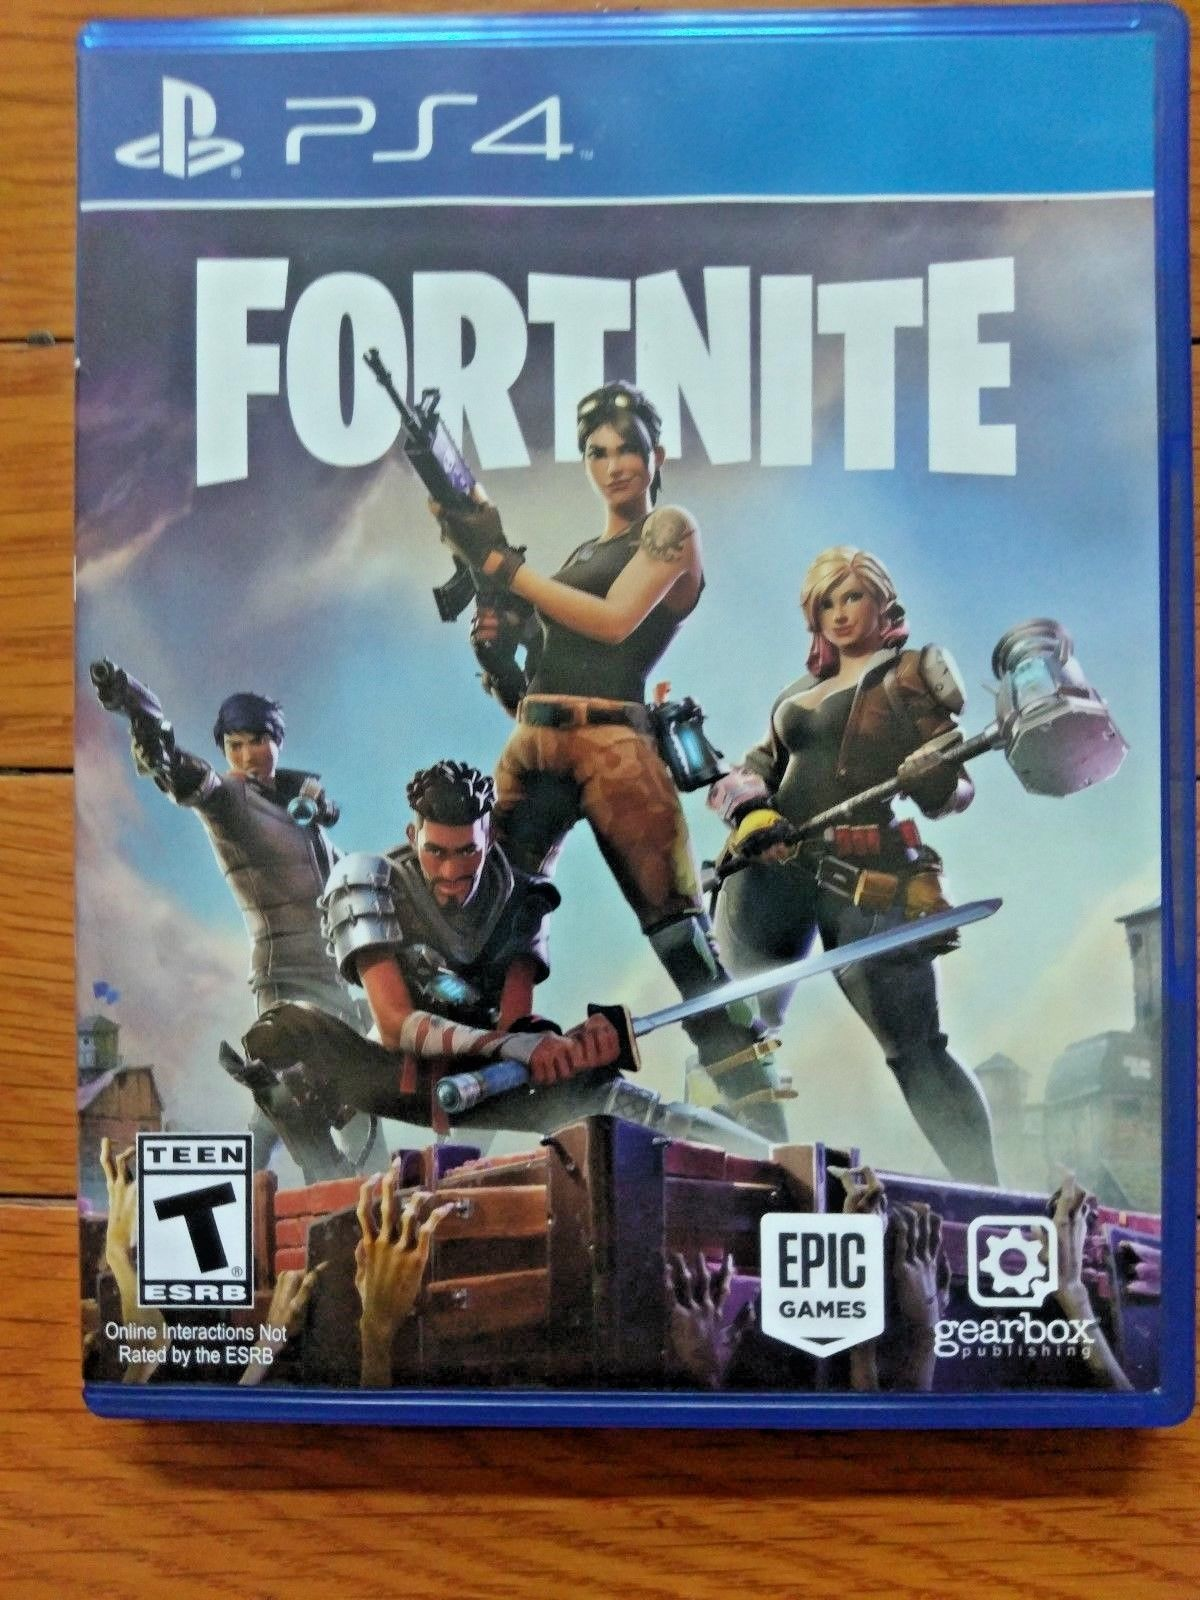 Fortnite (Sony PlayStation 4, 2017) PS4 Game: $44.95 End Date ...